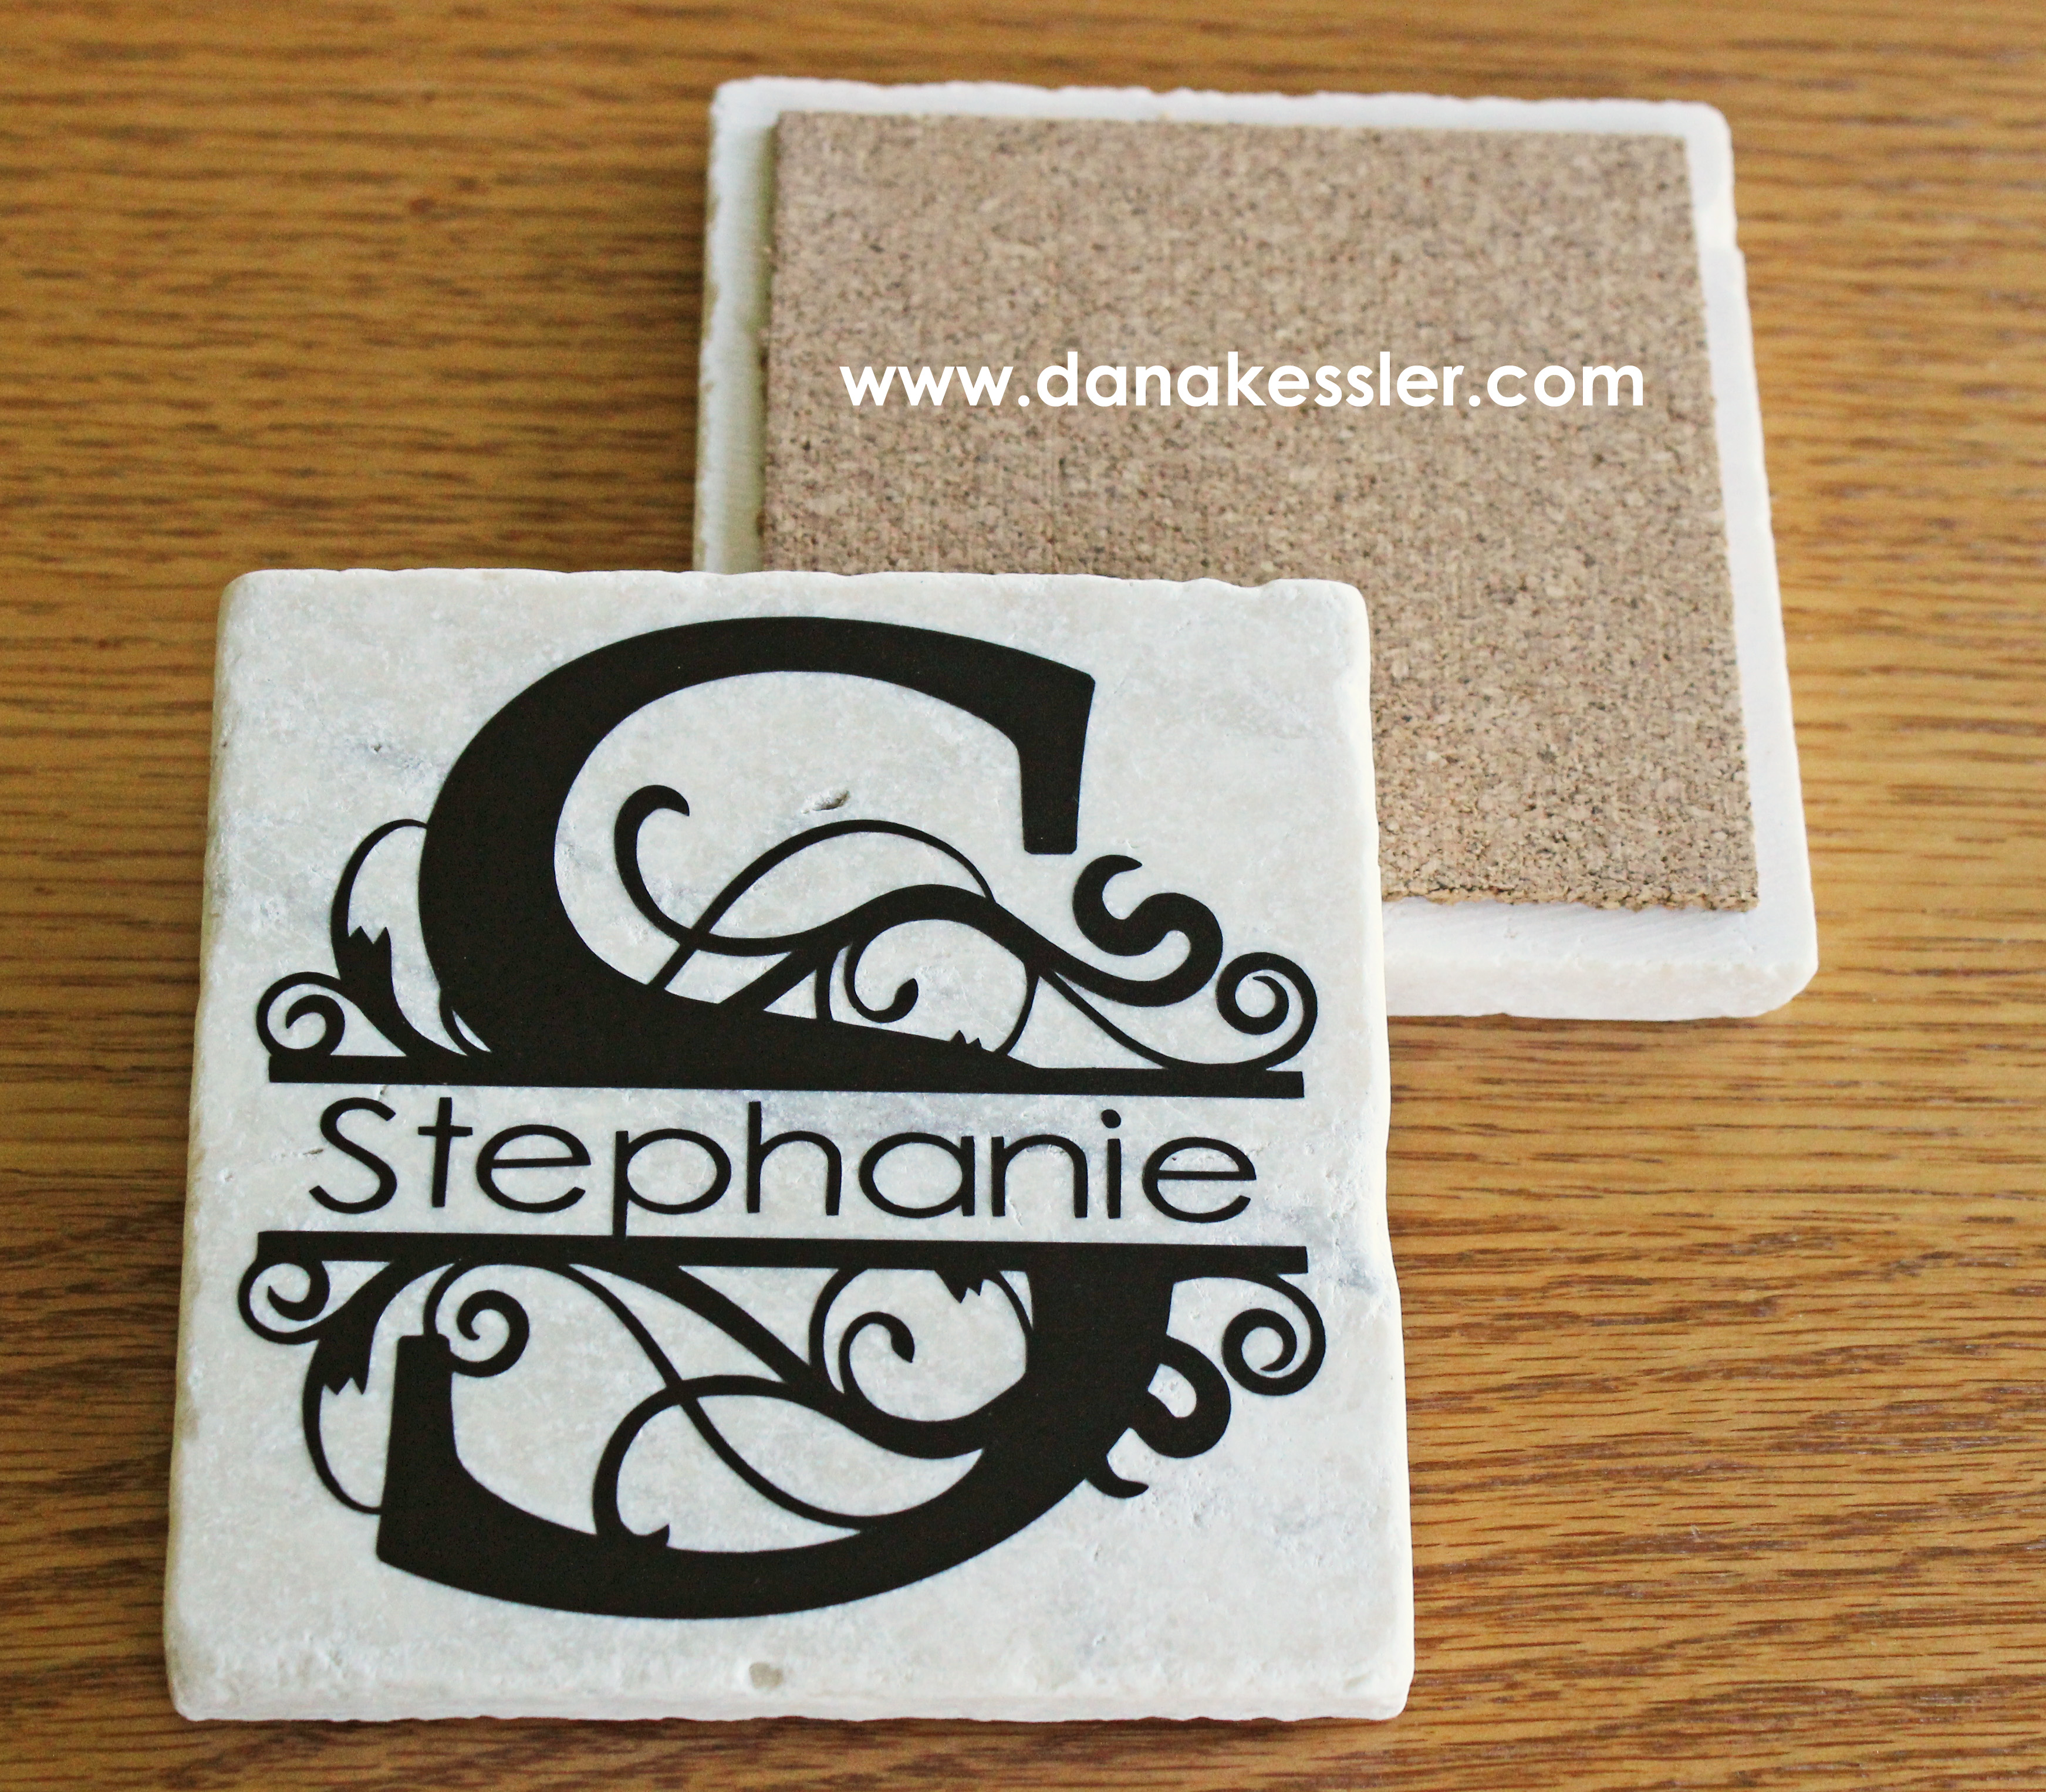 Personalized coaster tiles with cricut explore for Cricut crafts to sell